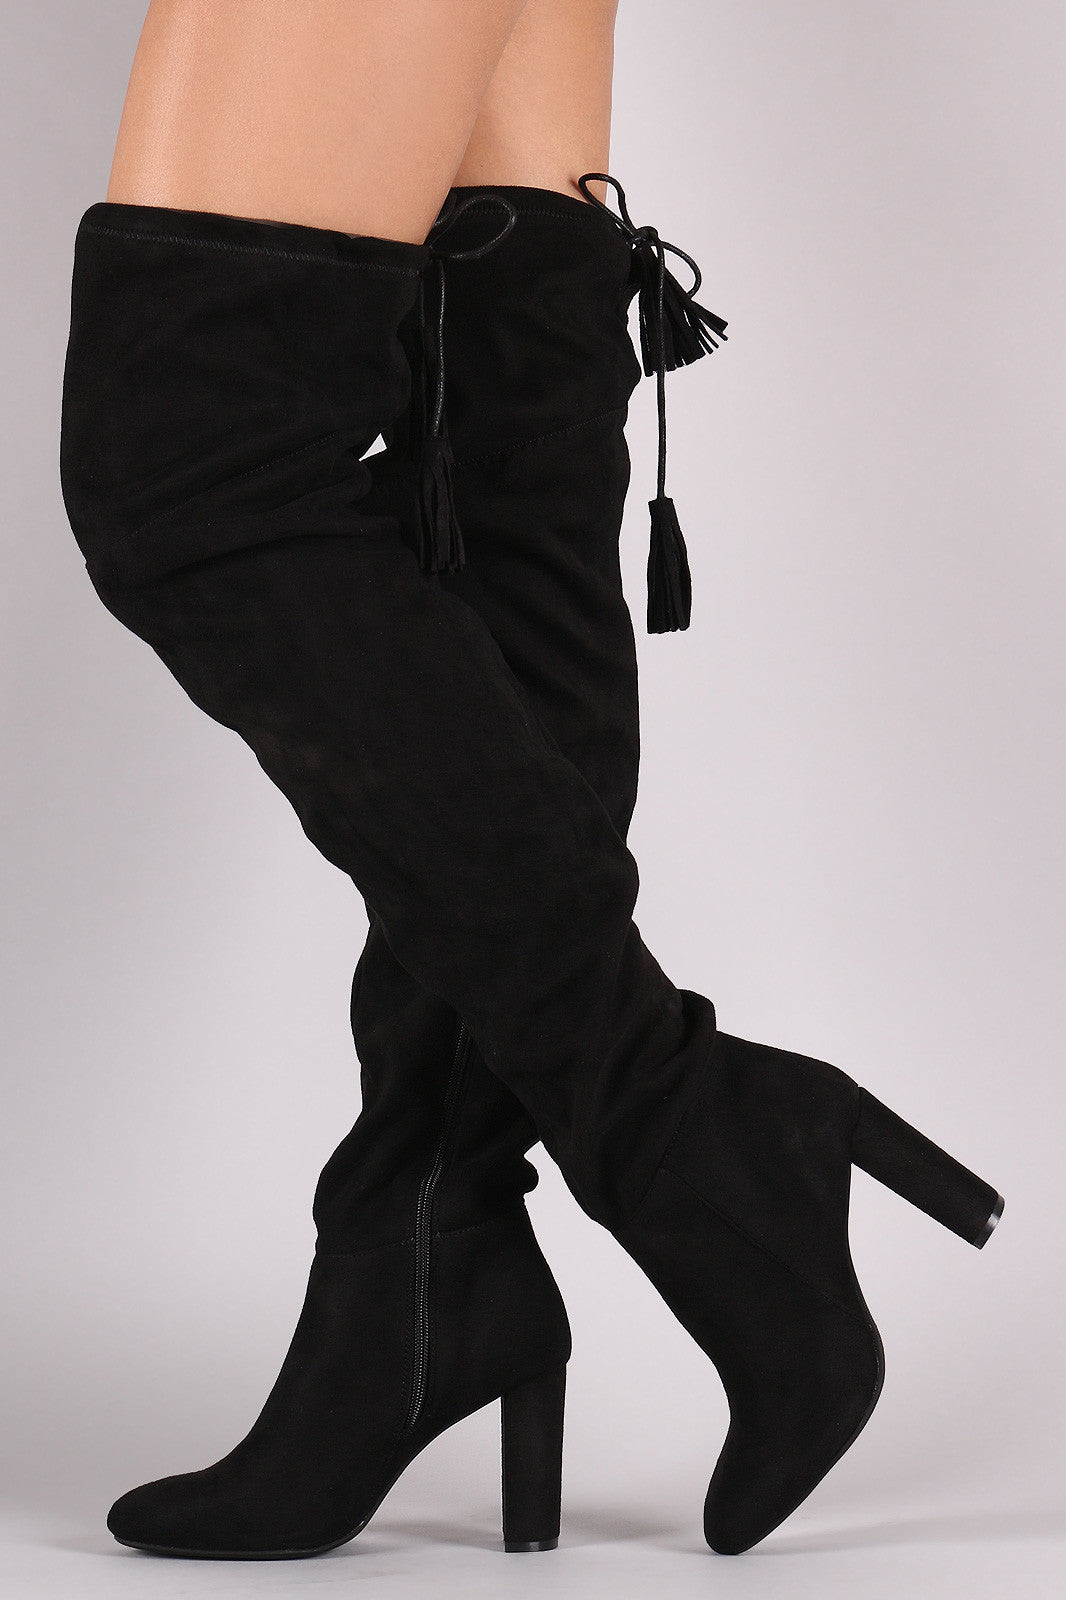 Suede Tassel Drawstring Chunky Heeled Over-The-Knee Boots - Thick 'N' Curvy Shop - 6